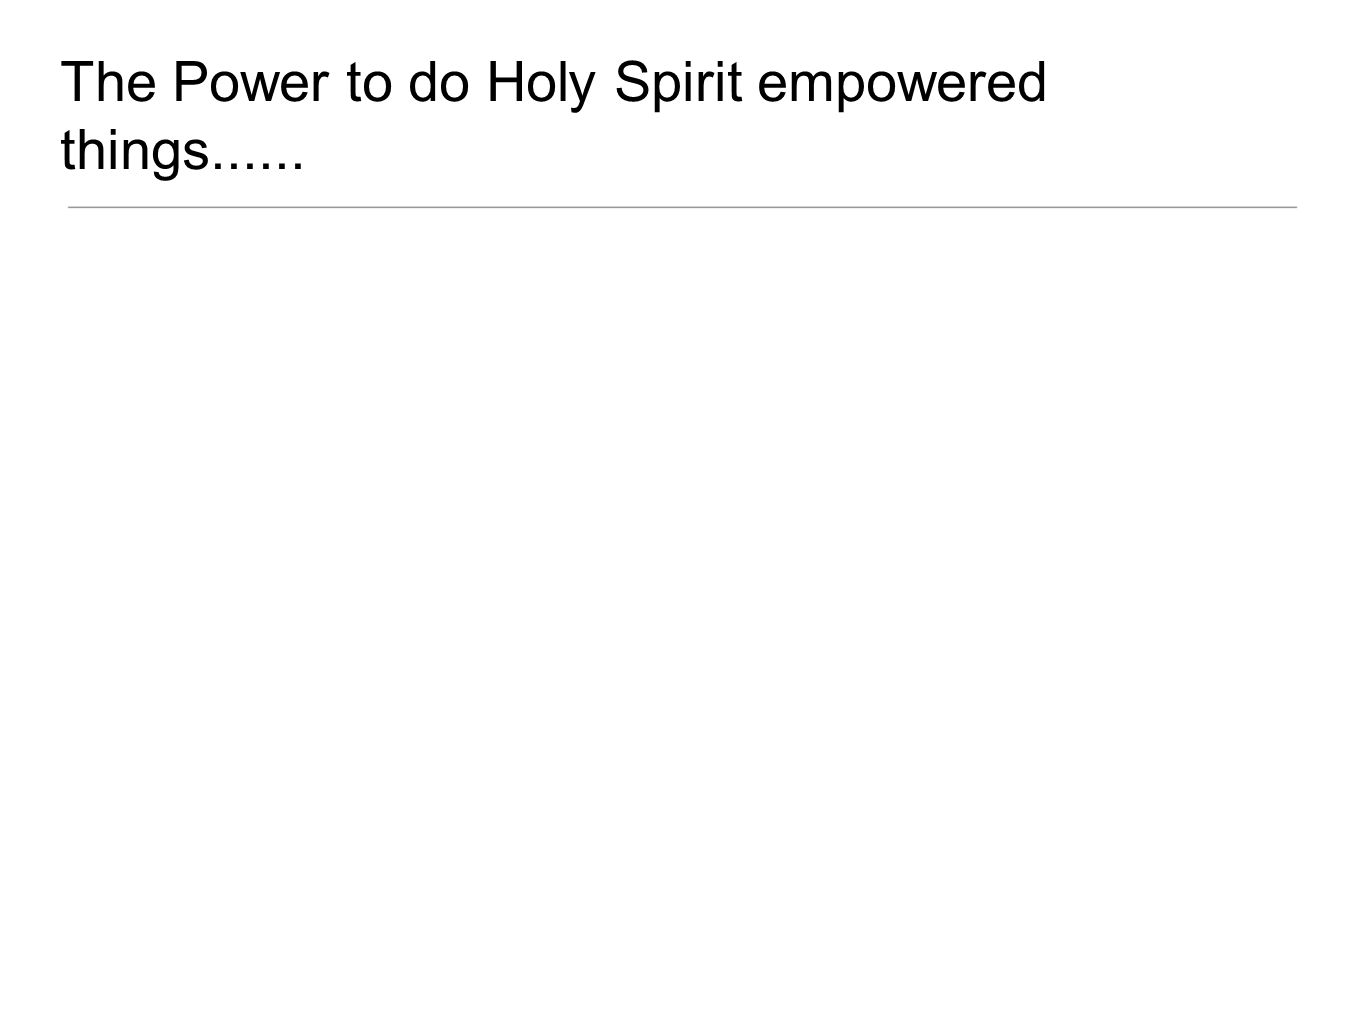 The Power to do Holy Spirit empowered things......